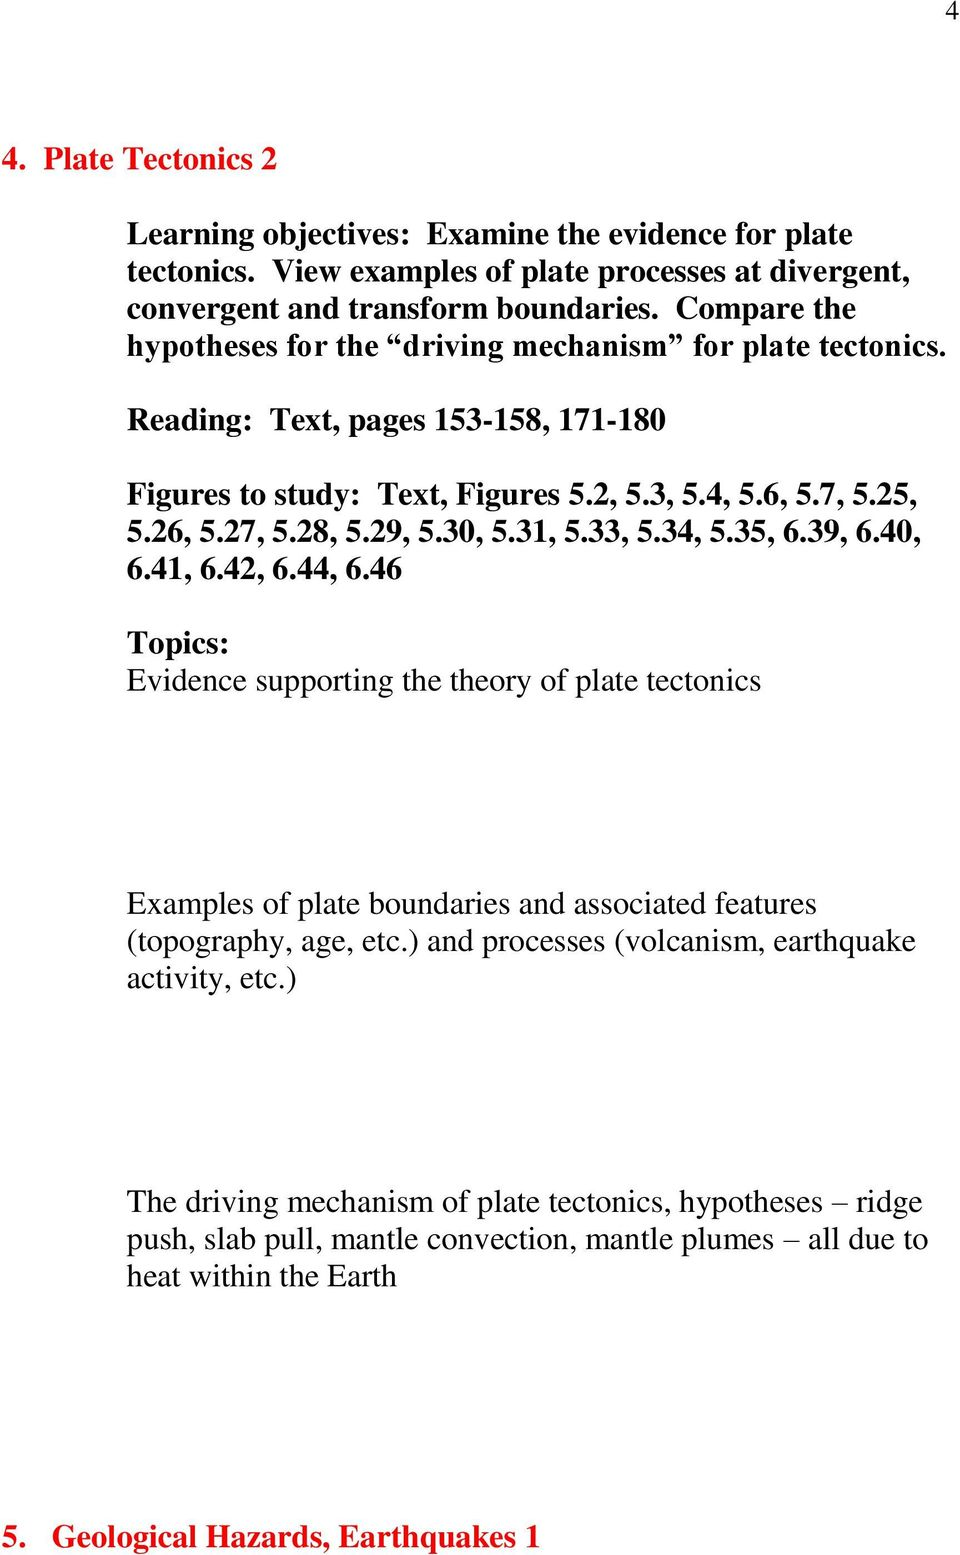 30, 5.31, 5.33, 5.34, 5.35, 6.39, 6.40, 6.41, 6.42, 6.44, 6.46 Evidence supporting the theory of plate tectonics Examples of plate boundaries and associated features (topography, age, etc.